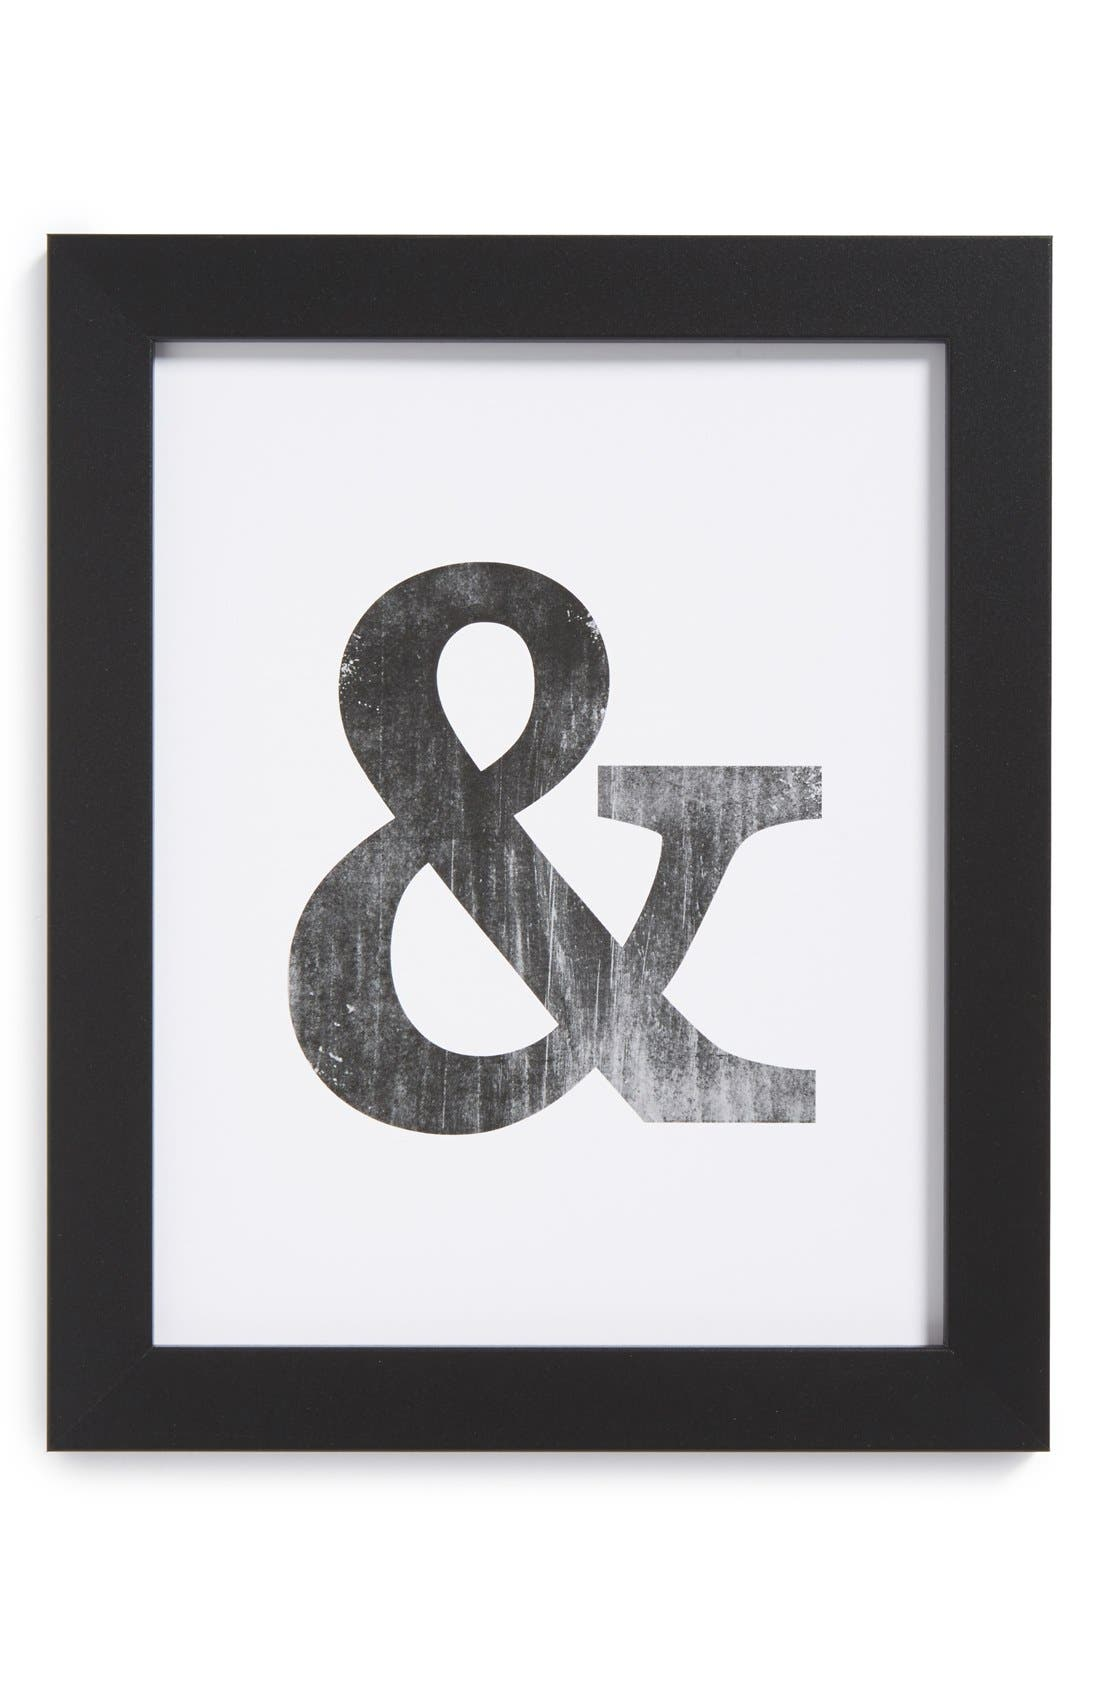 Alternate Image 1 Selected - The Oyster's Pearl 'Ampersand' Framed Print